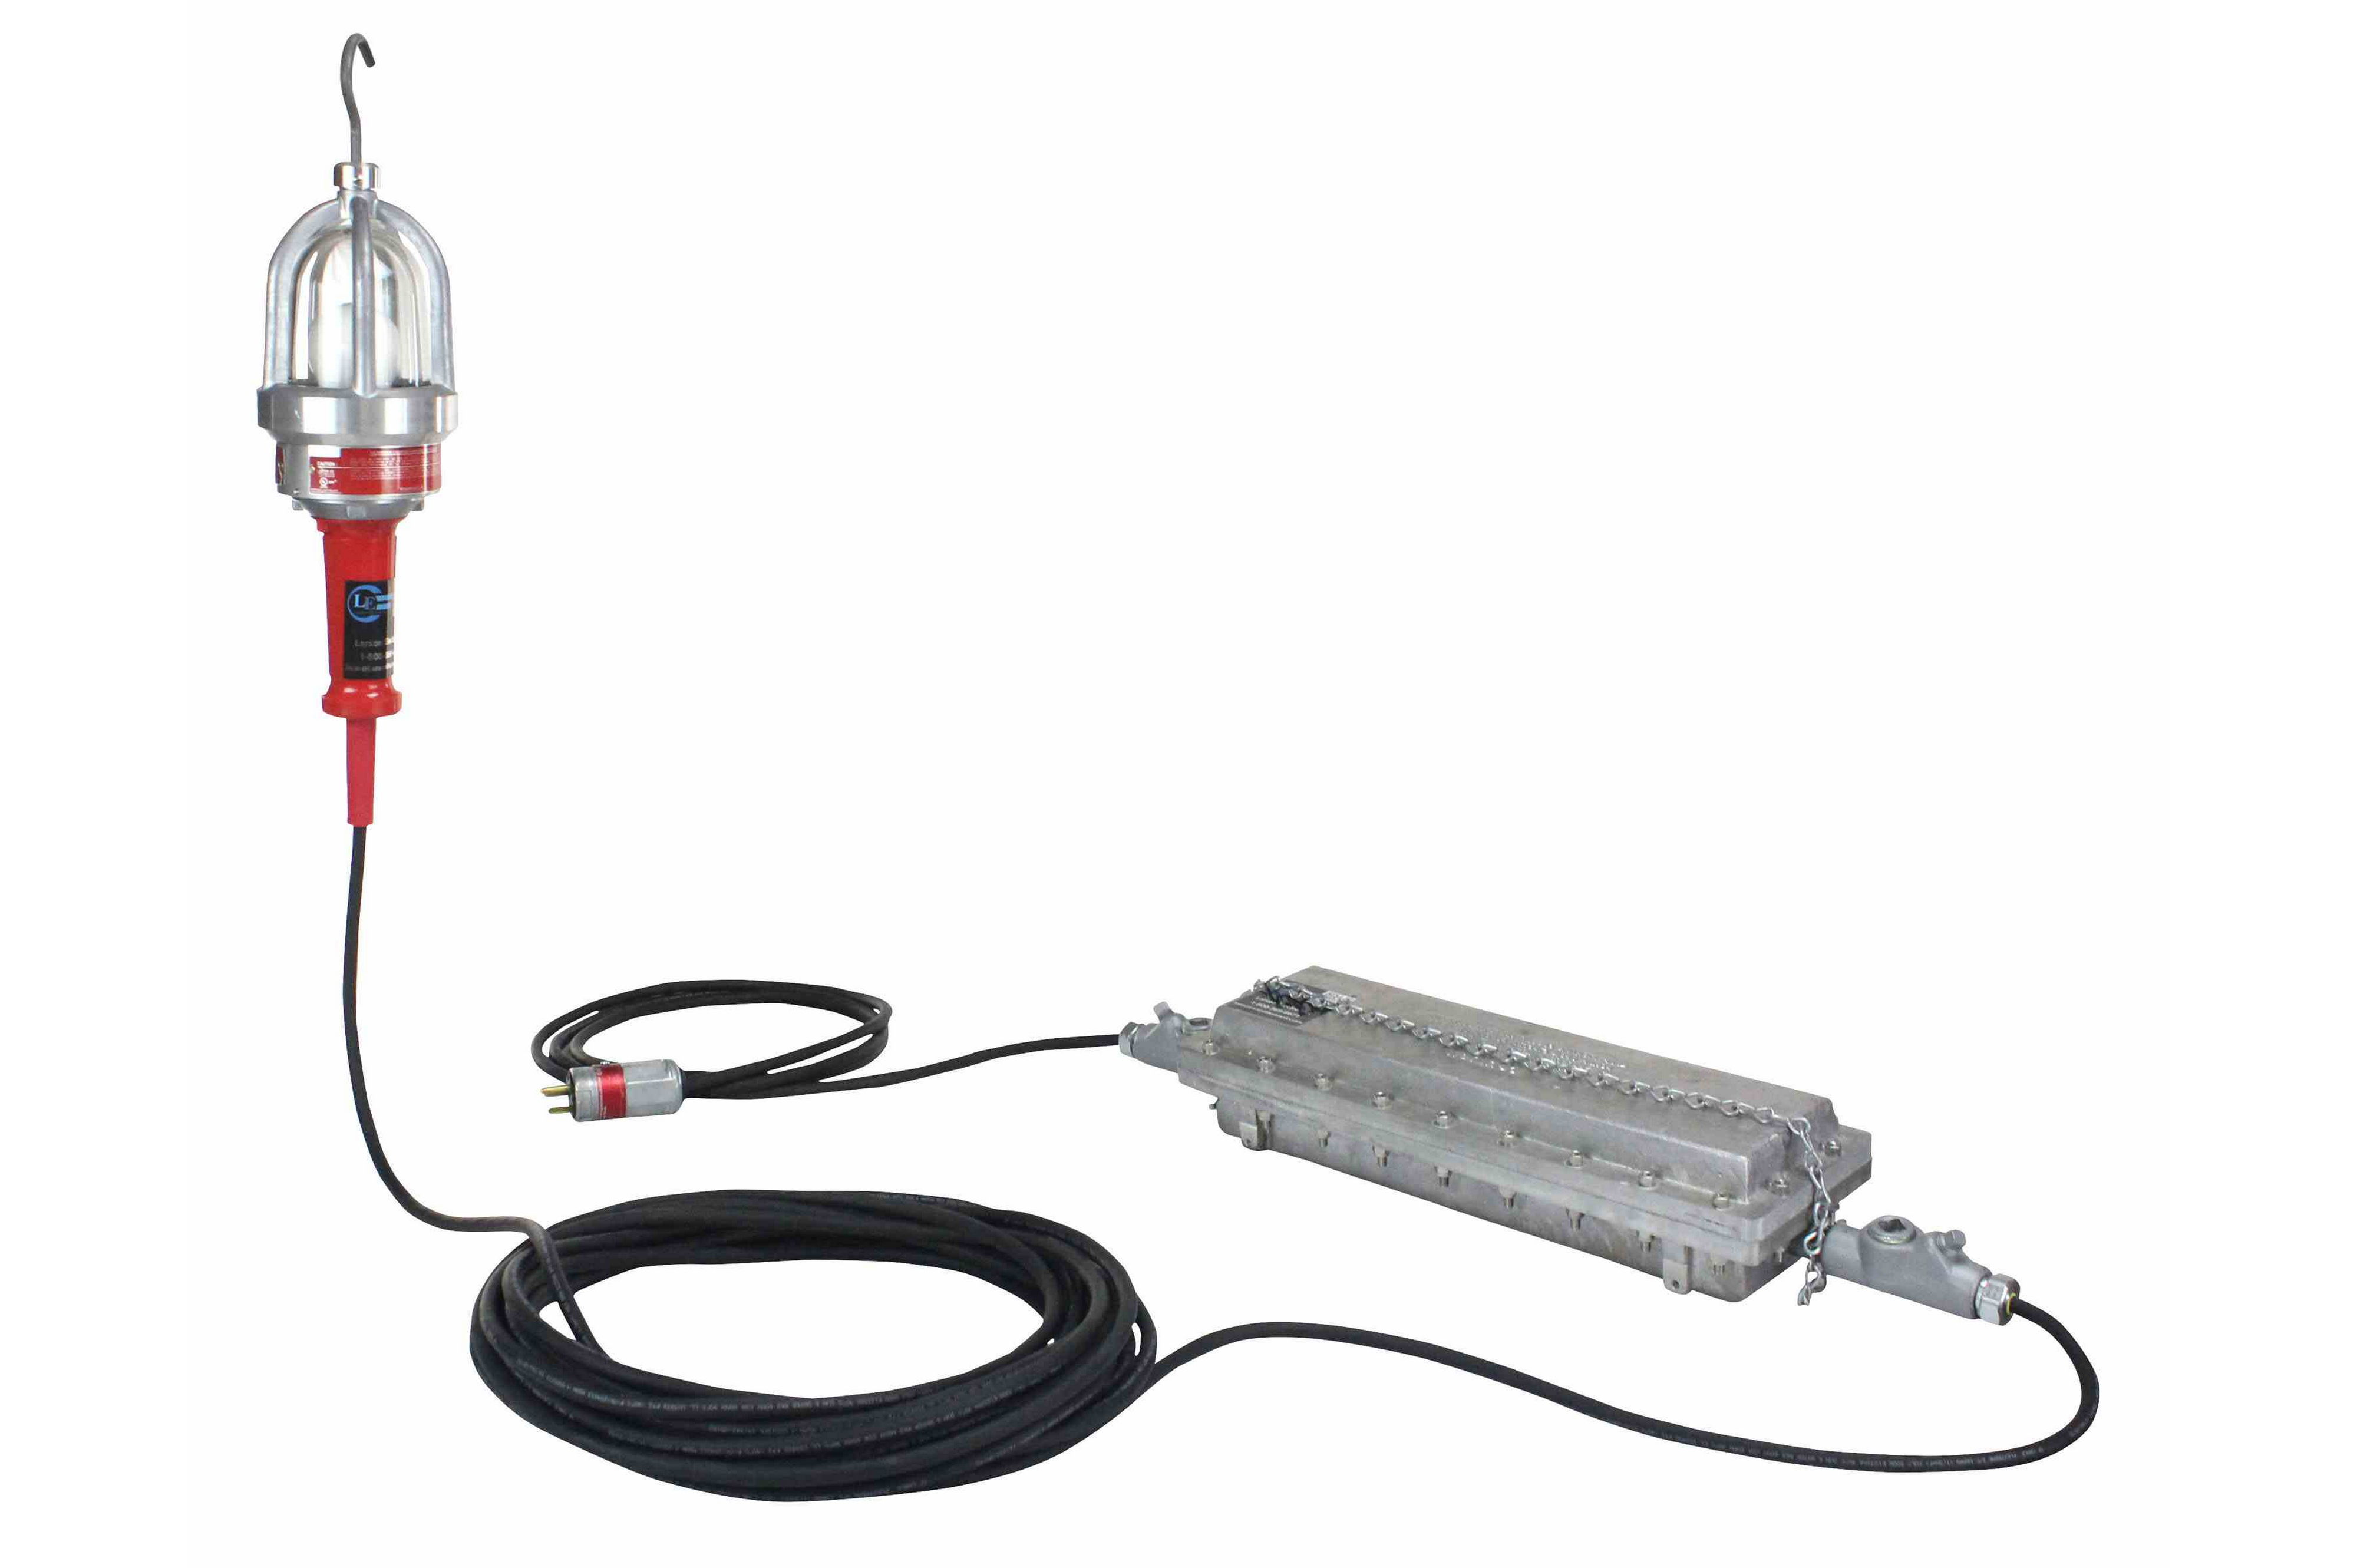 Explosion Proof Drop Light Hand Lamp With C1d2 Inline Transformer